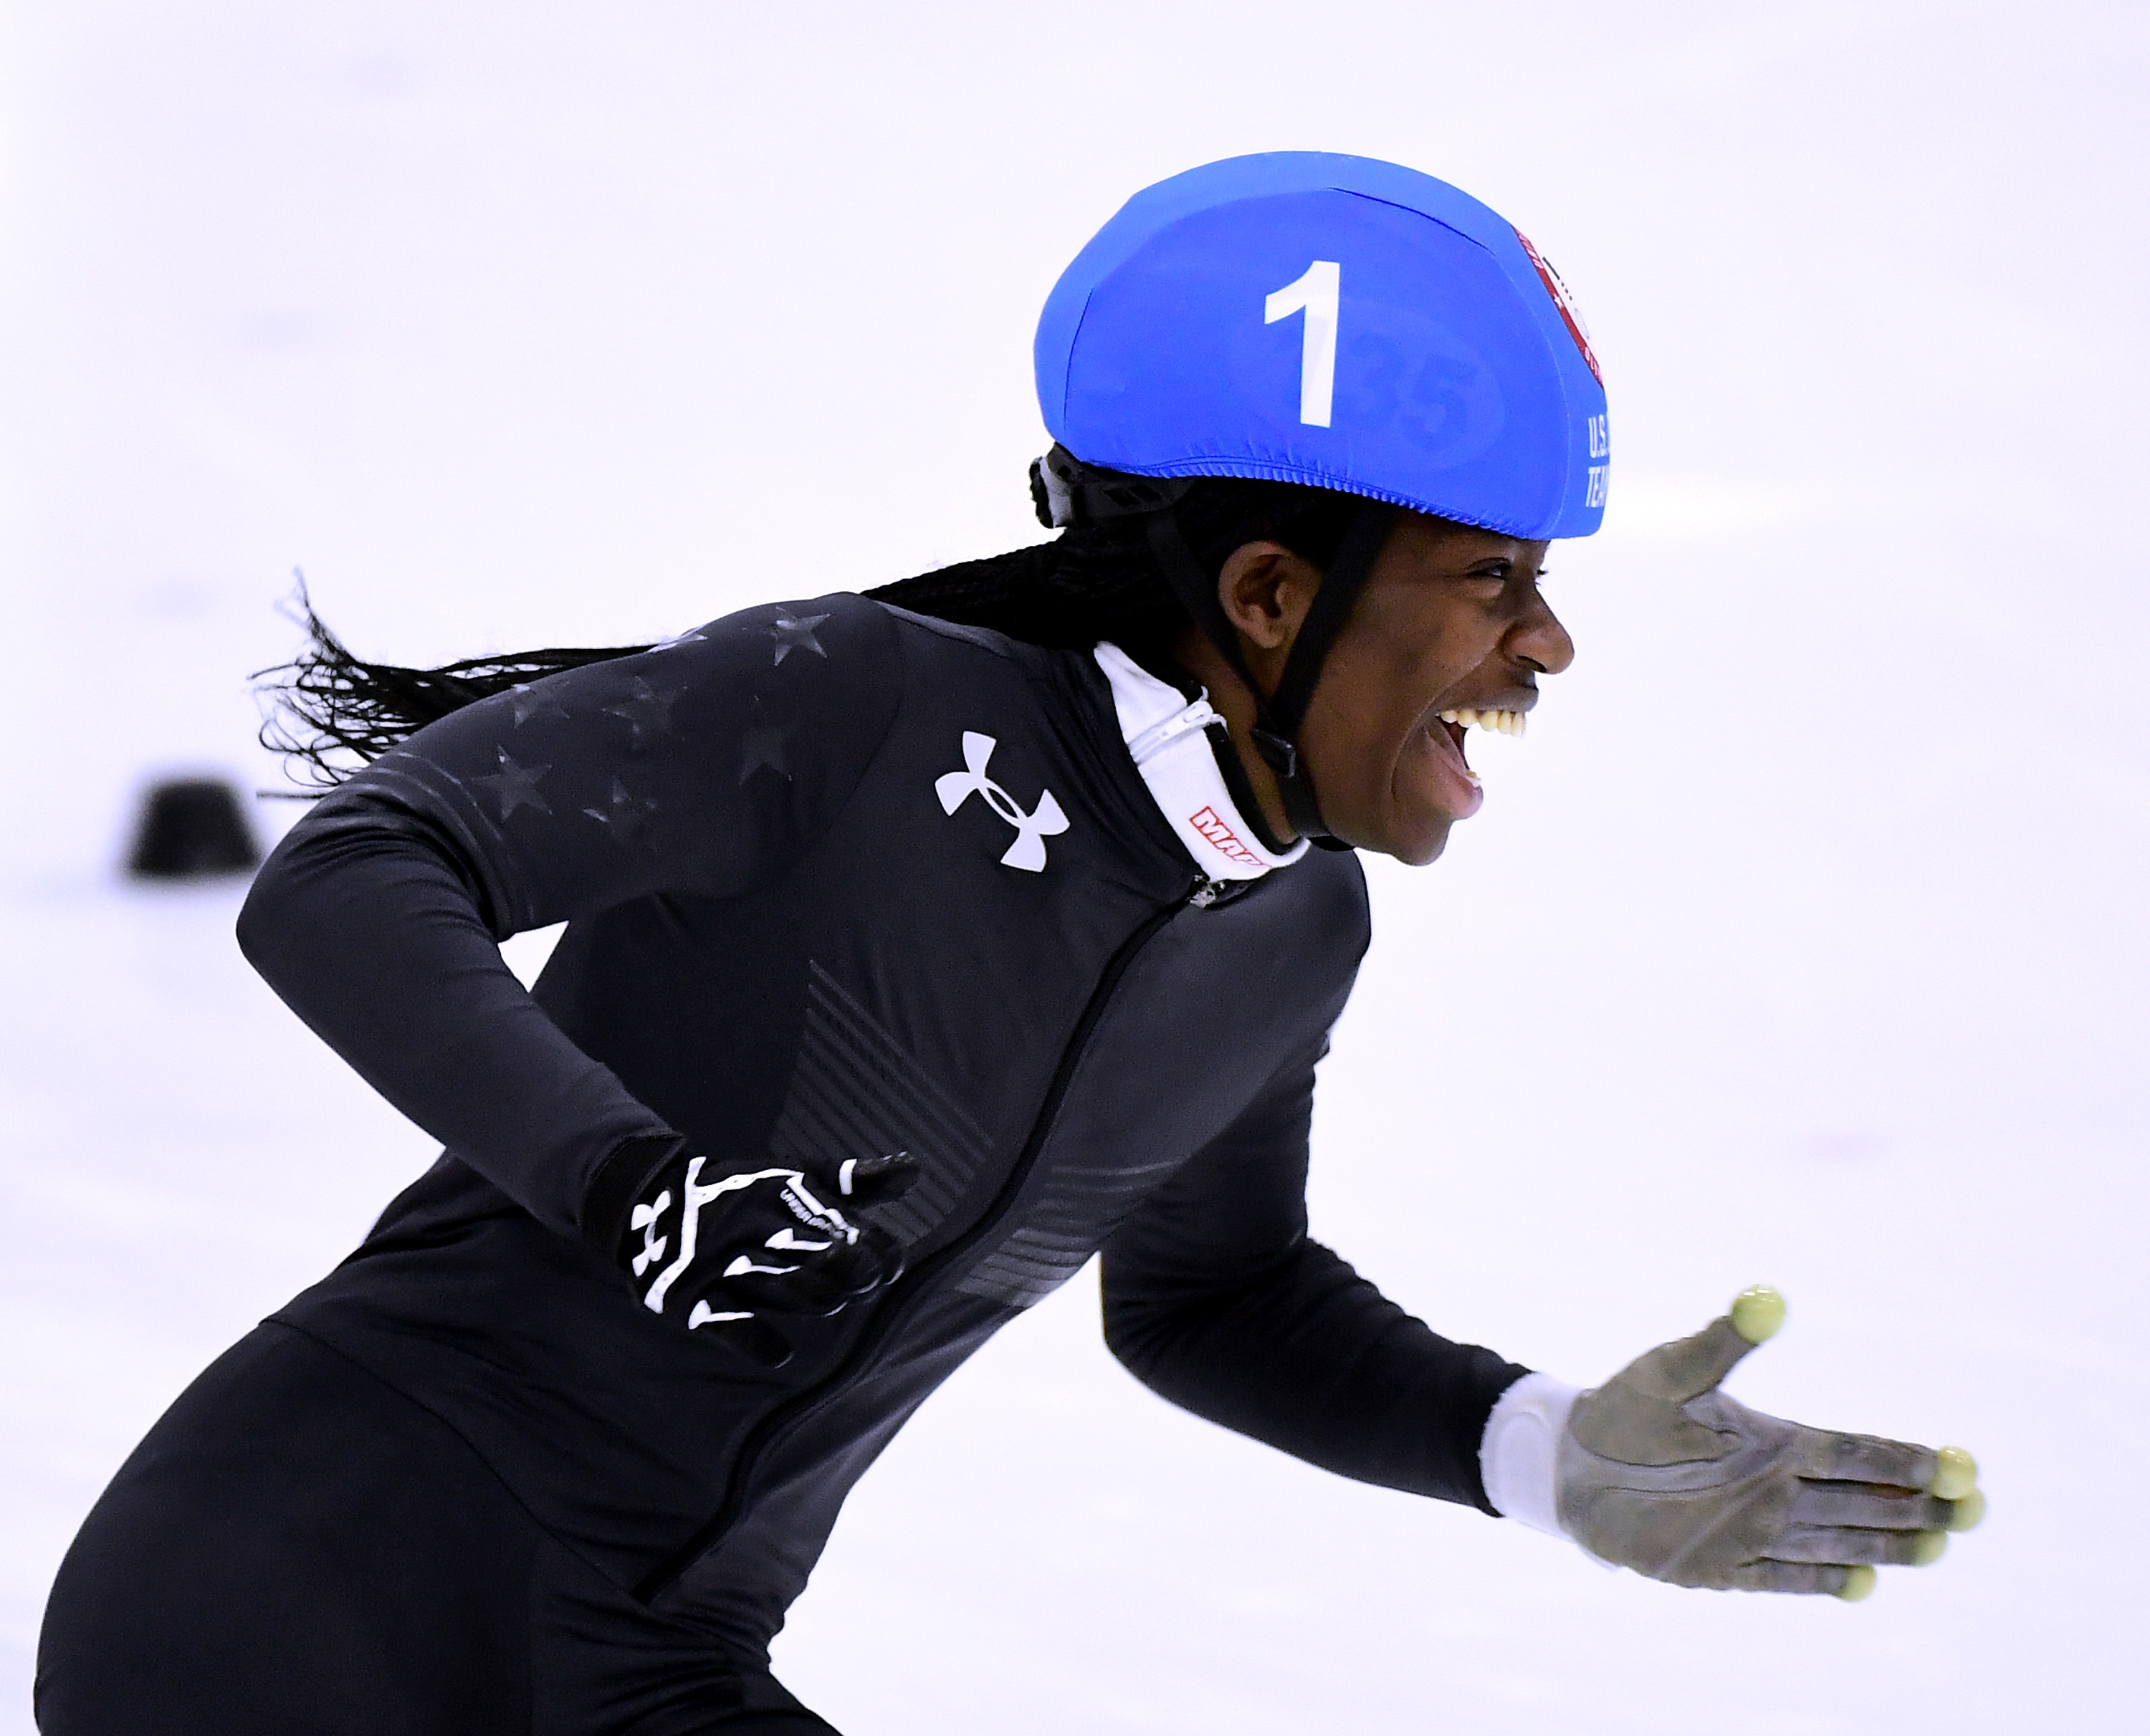 7 things to know about Maame Biney, the first black woman to make the U.S. Olympic speed skating team